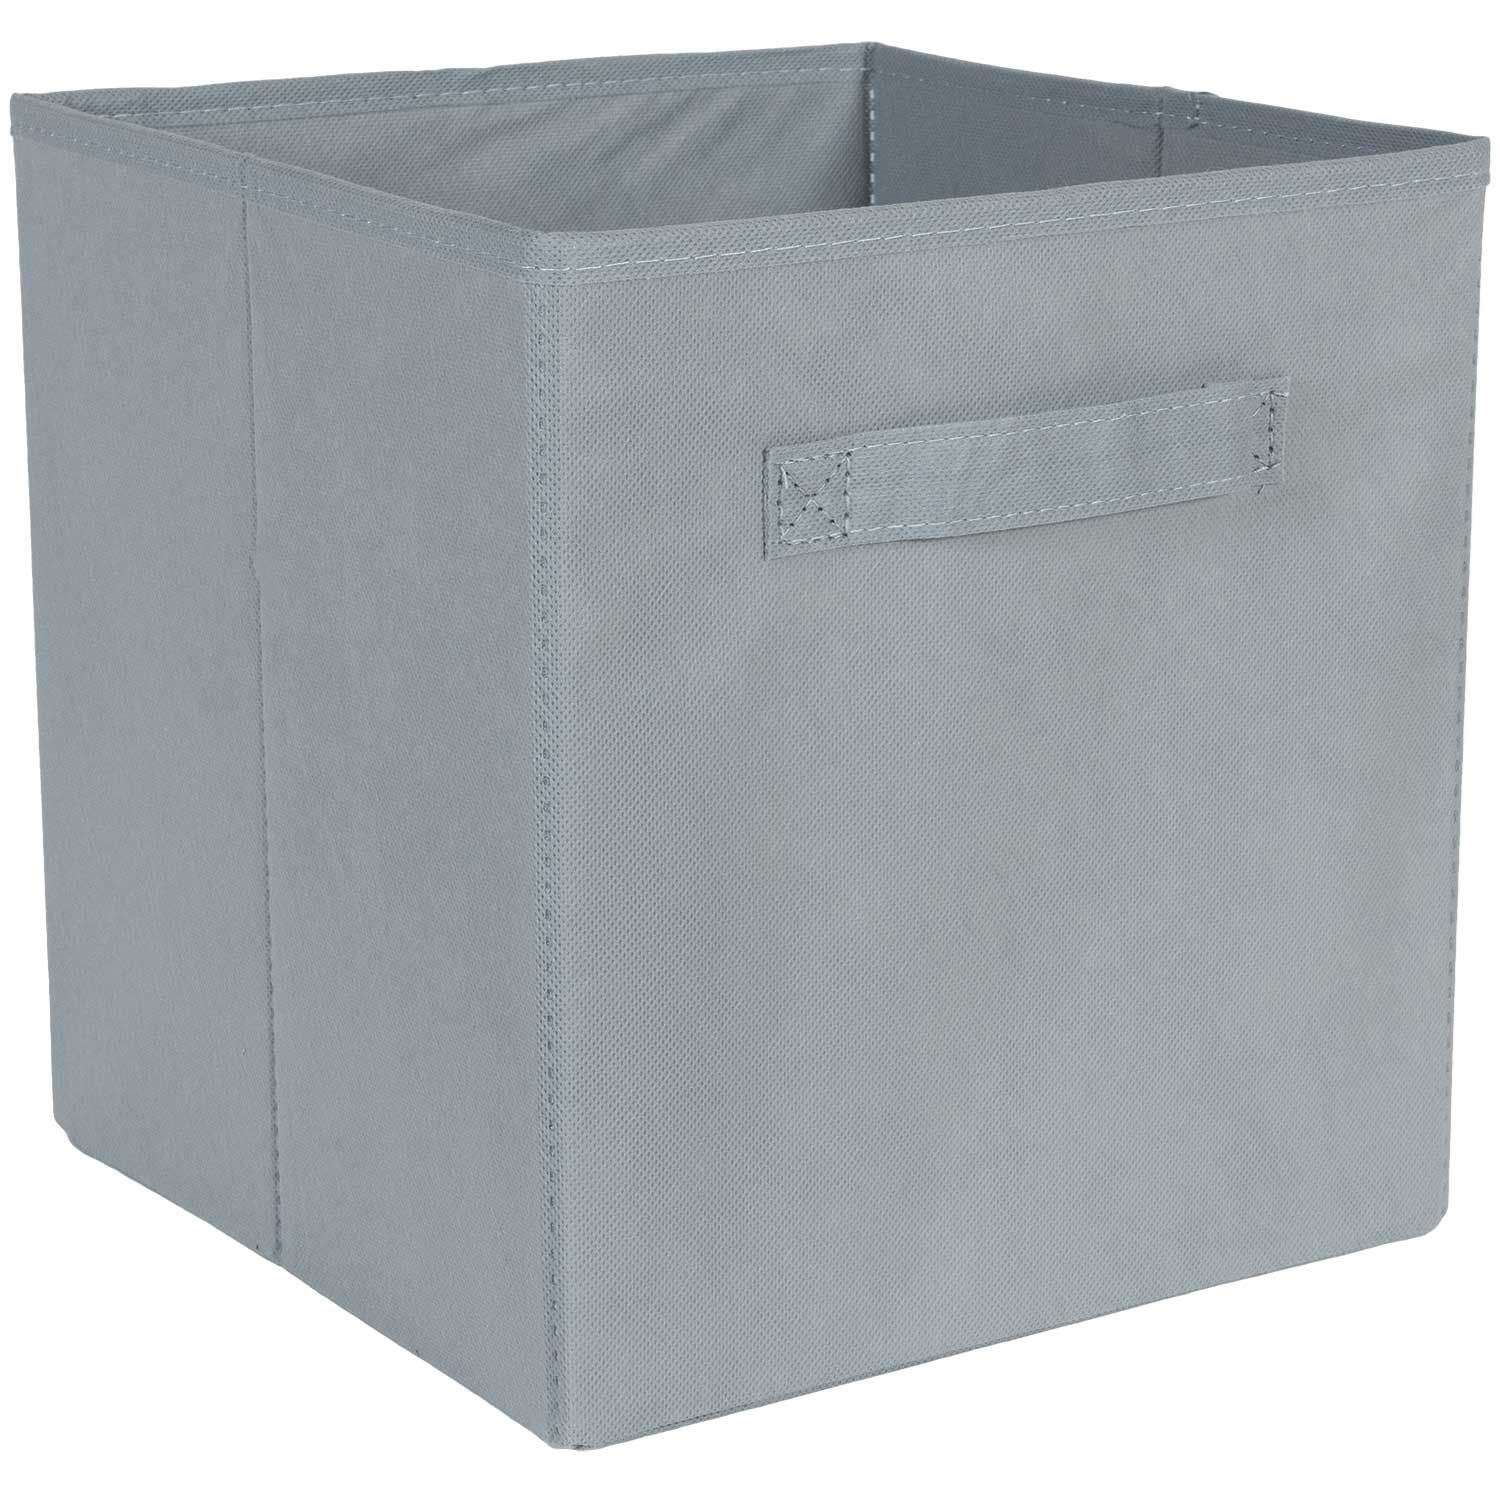 Picture of SystemBuild Gray Fabric Bin